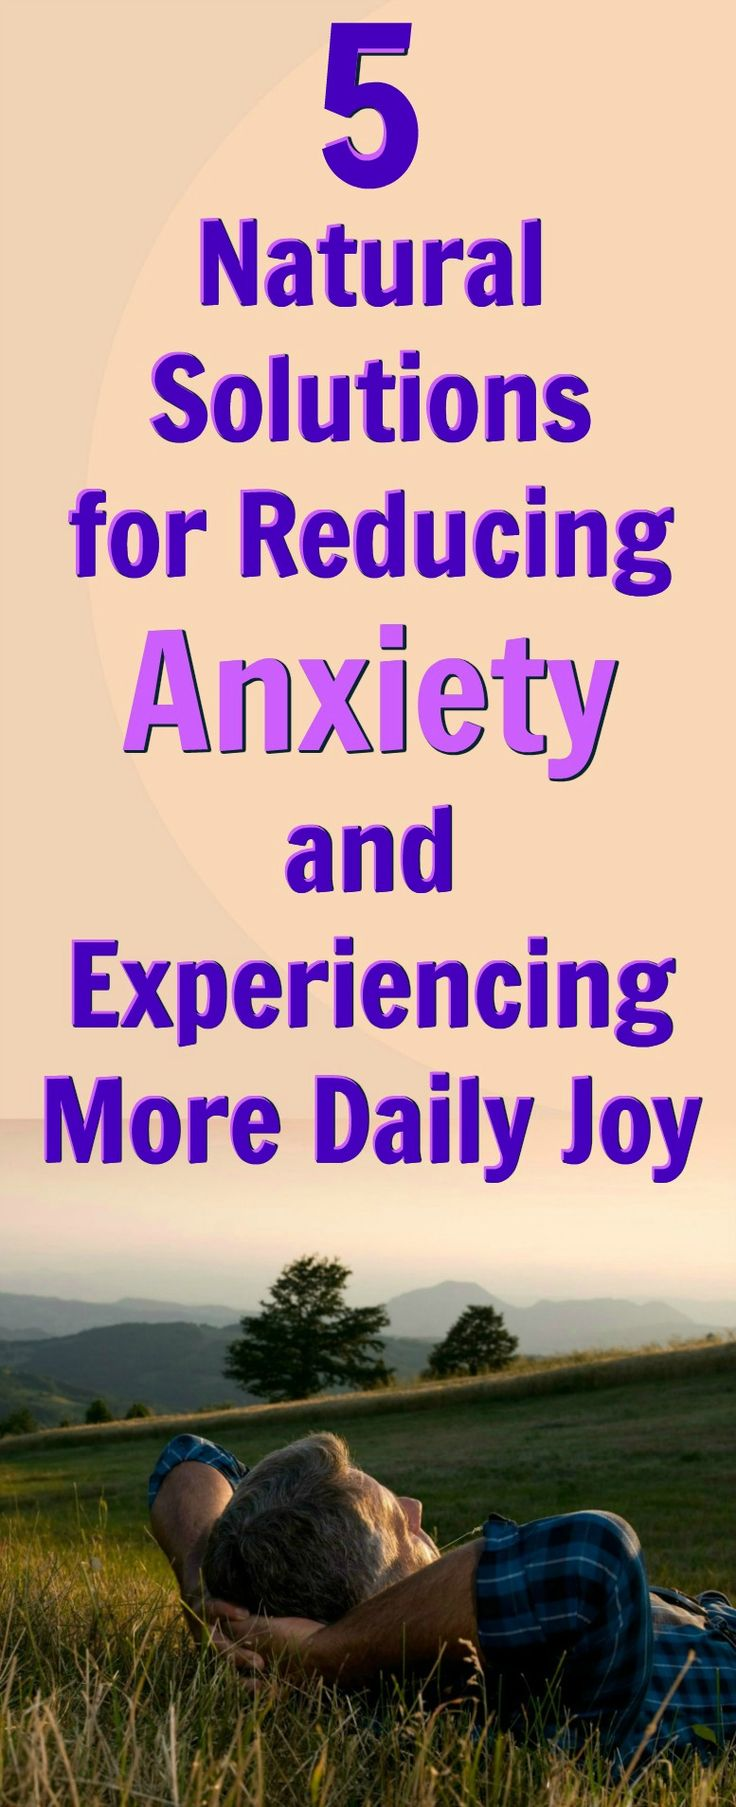 Natural methods for lessening daily #anxiety while upping your #joy levels! http://overfiftyandfit.com/natural-anxiety-solutions/ #psychology #wellness #selfcare